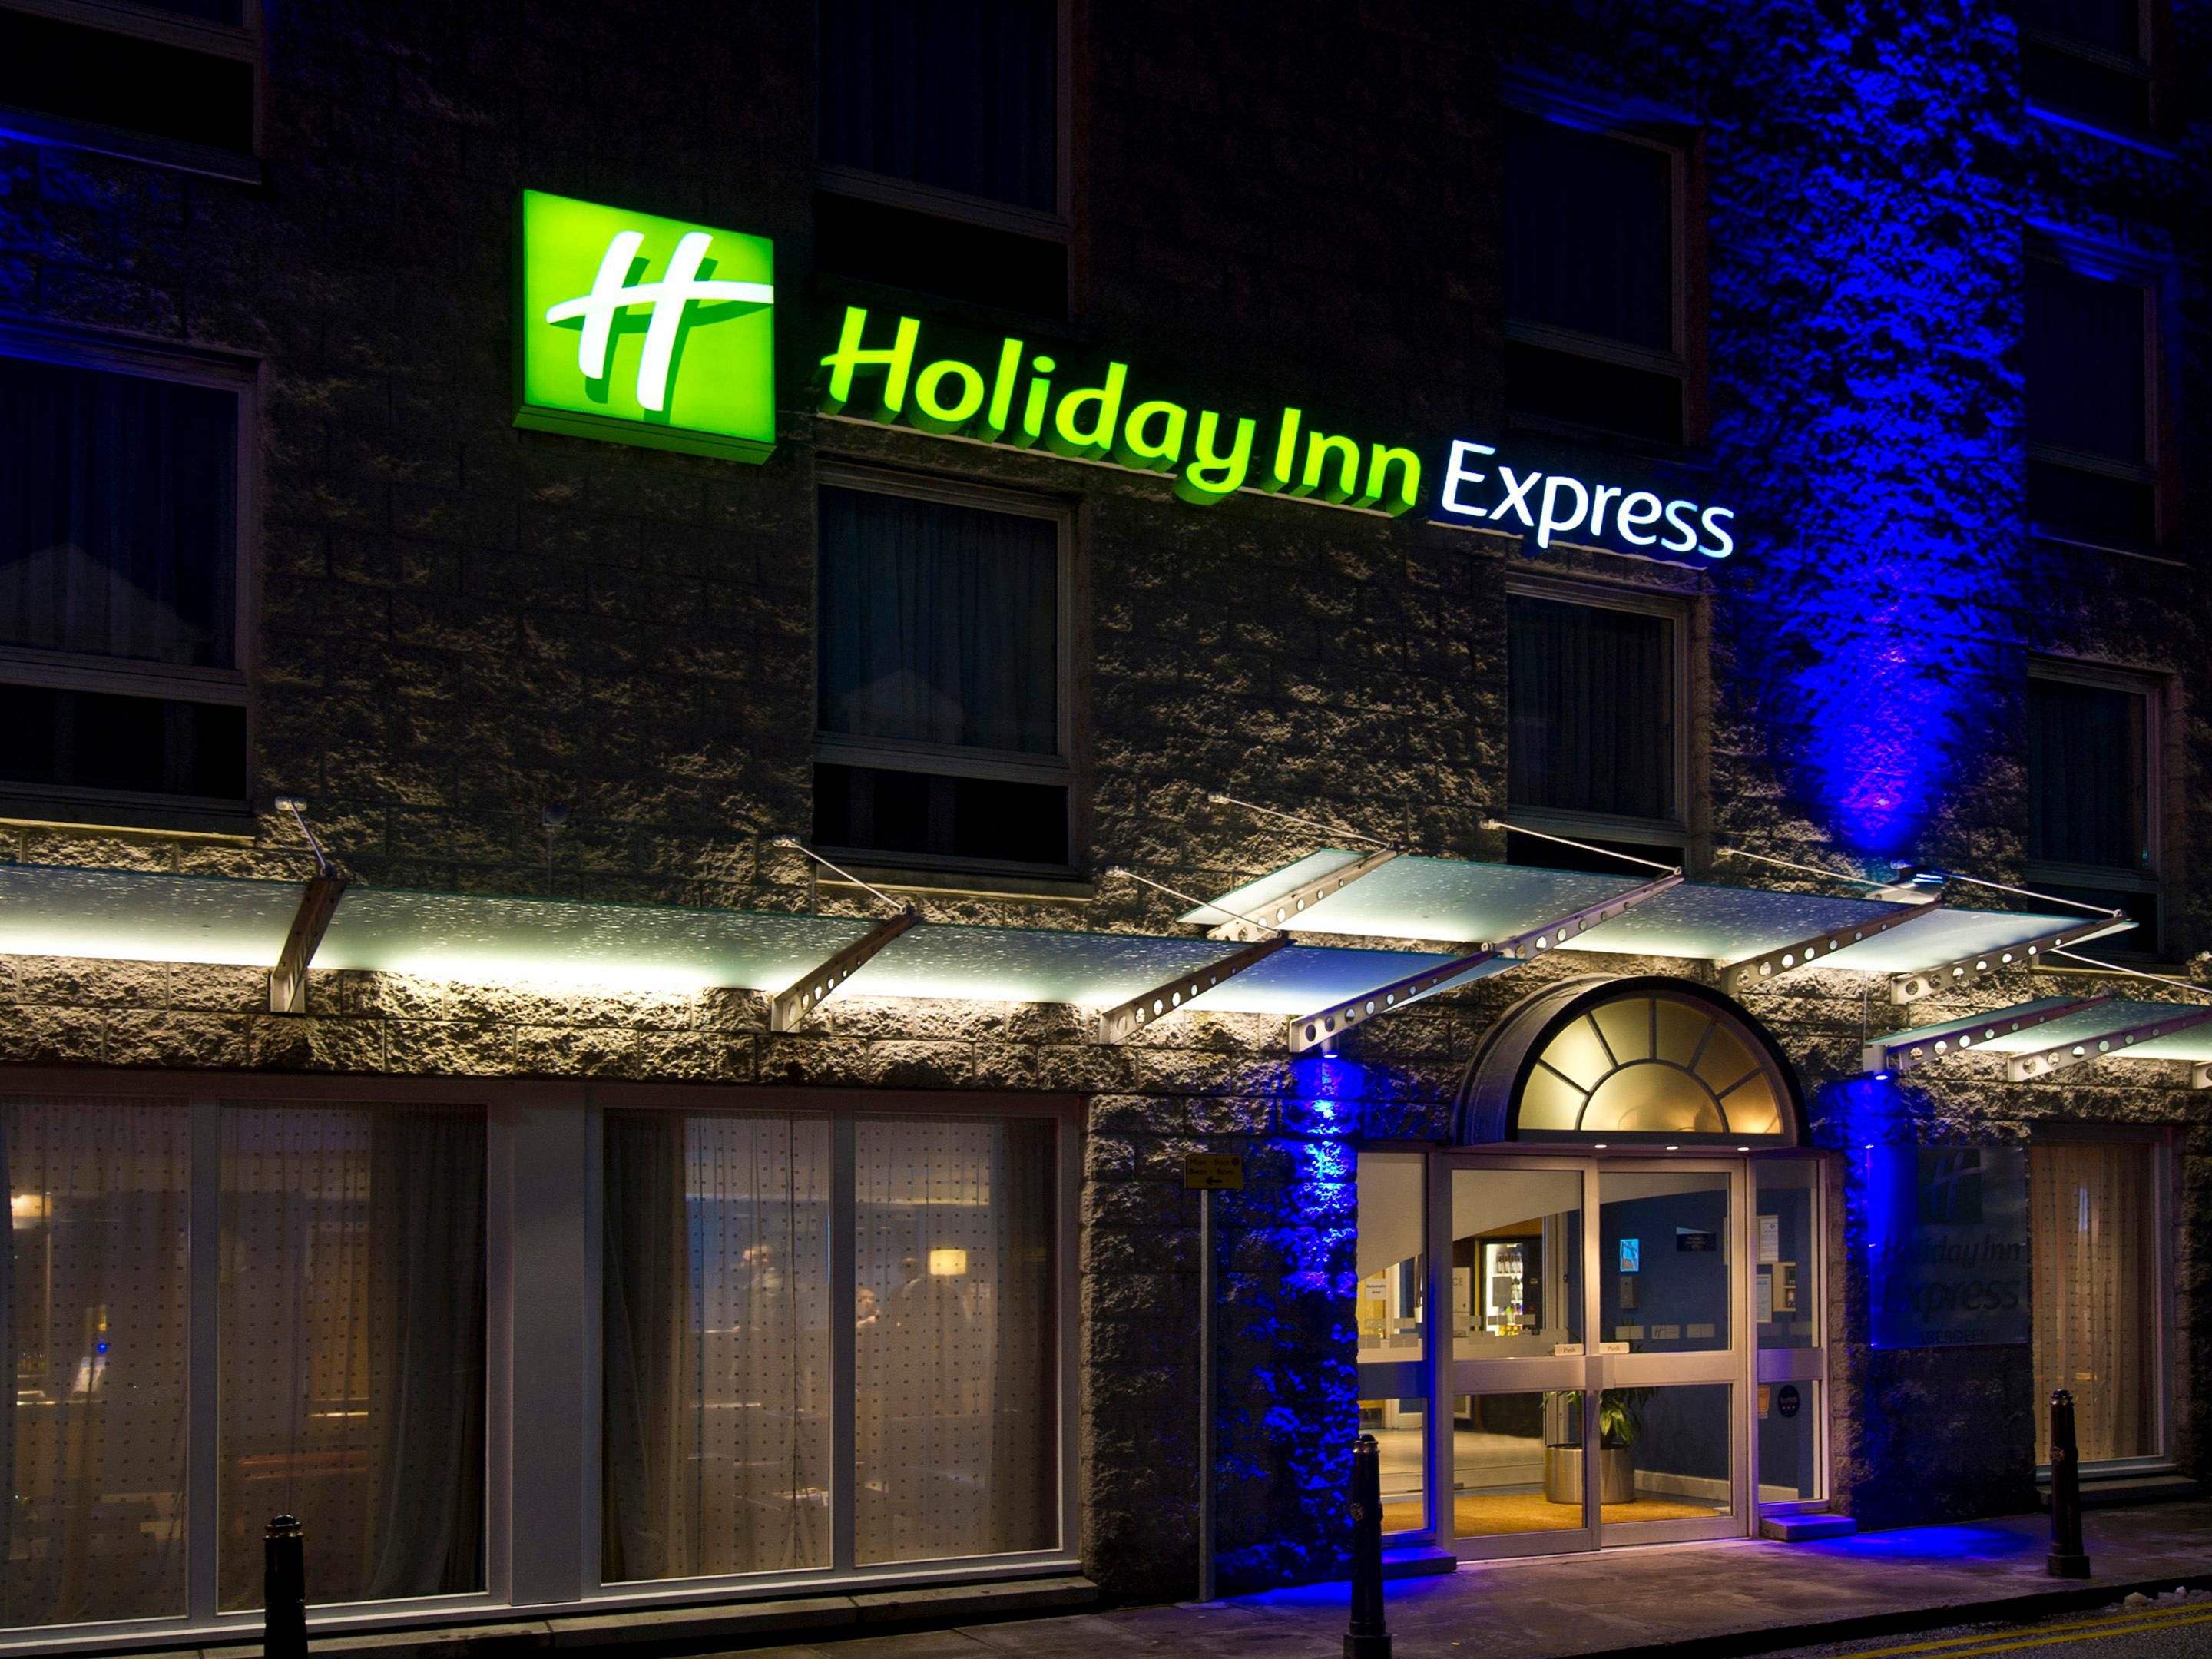 Holiday Inn Express Aberdeen City Centre from Chapel Street